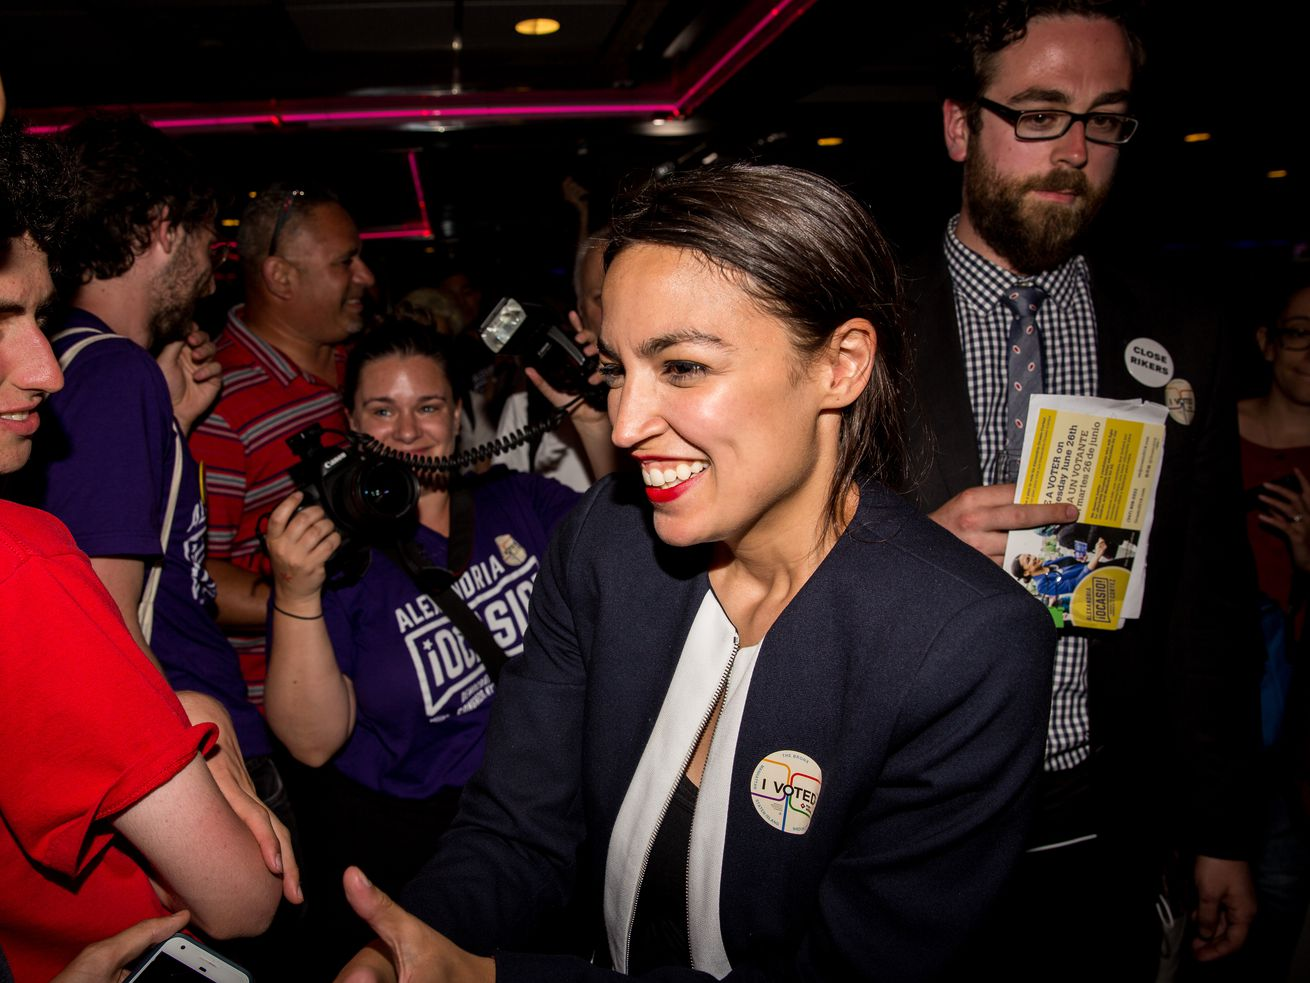 Democratic socialist Alexandria Ocasio-Cortez celebrates her win against Joe Crowley in the Democratic primary for the 14th Congressional District.